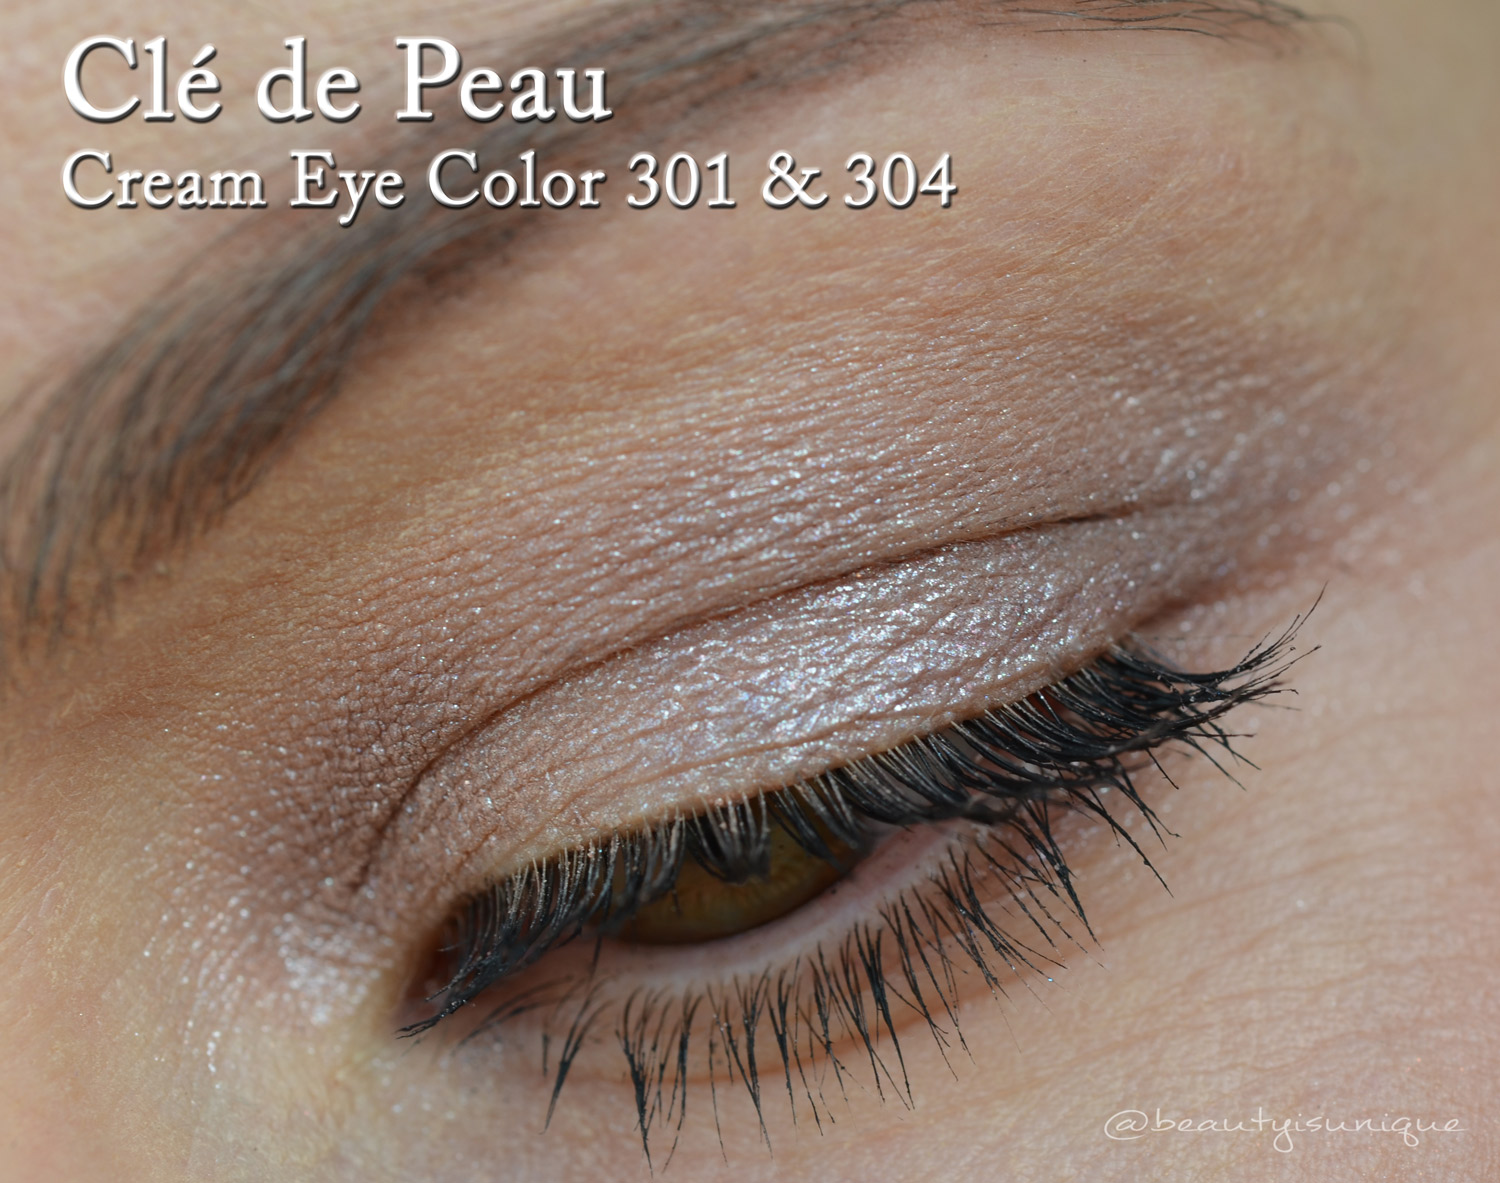 Cle-de-peau-creme-eye-color-swatches